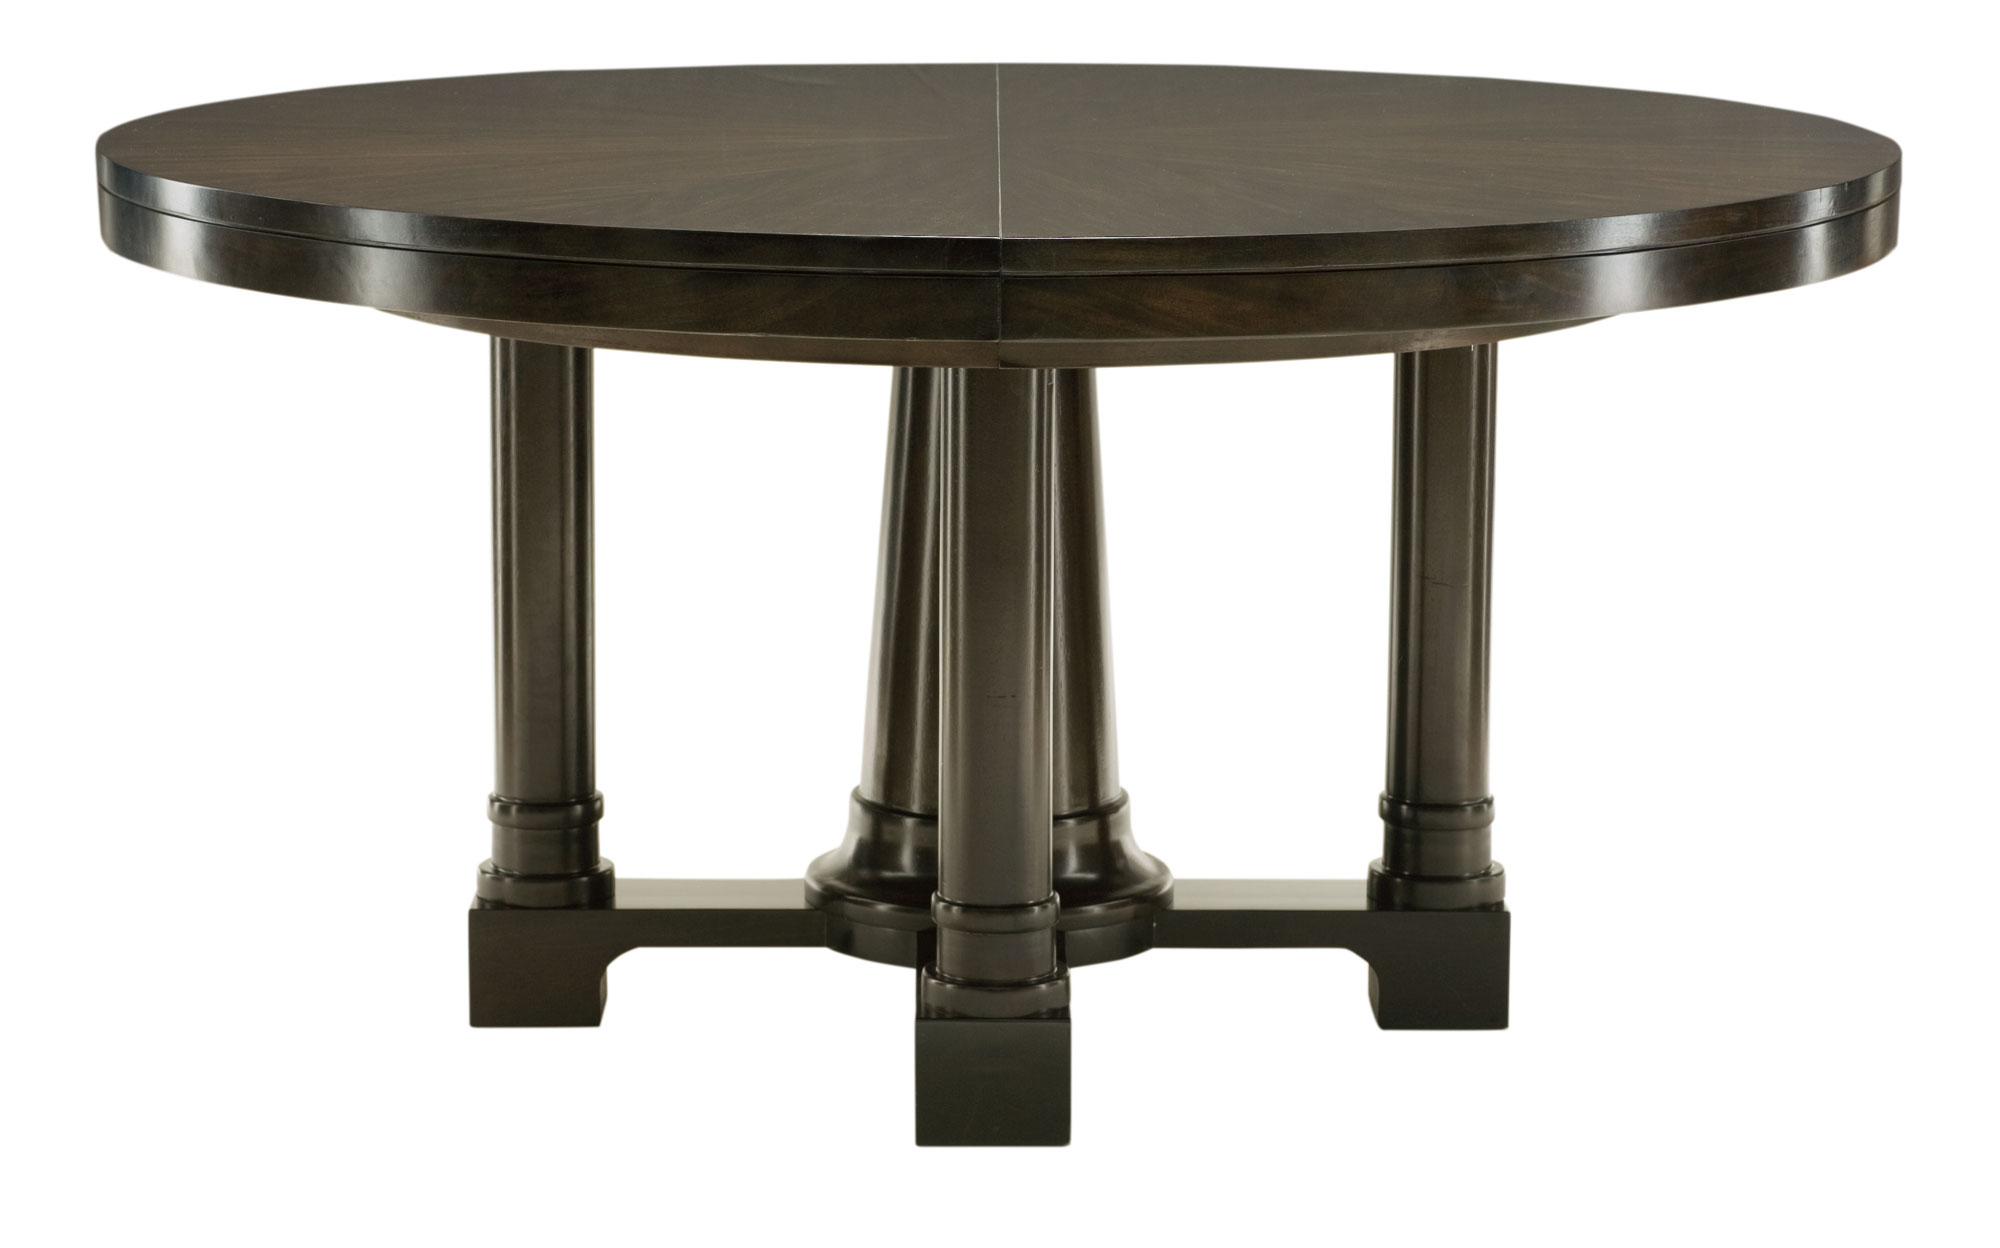 Round Dining Table Top and Base Bernhardt : 367270271 from bernhardt.com size 2000 x 1248 jpeg 125kB